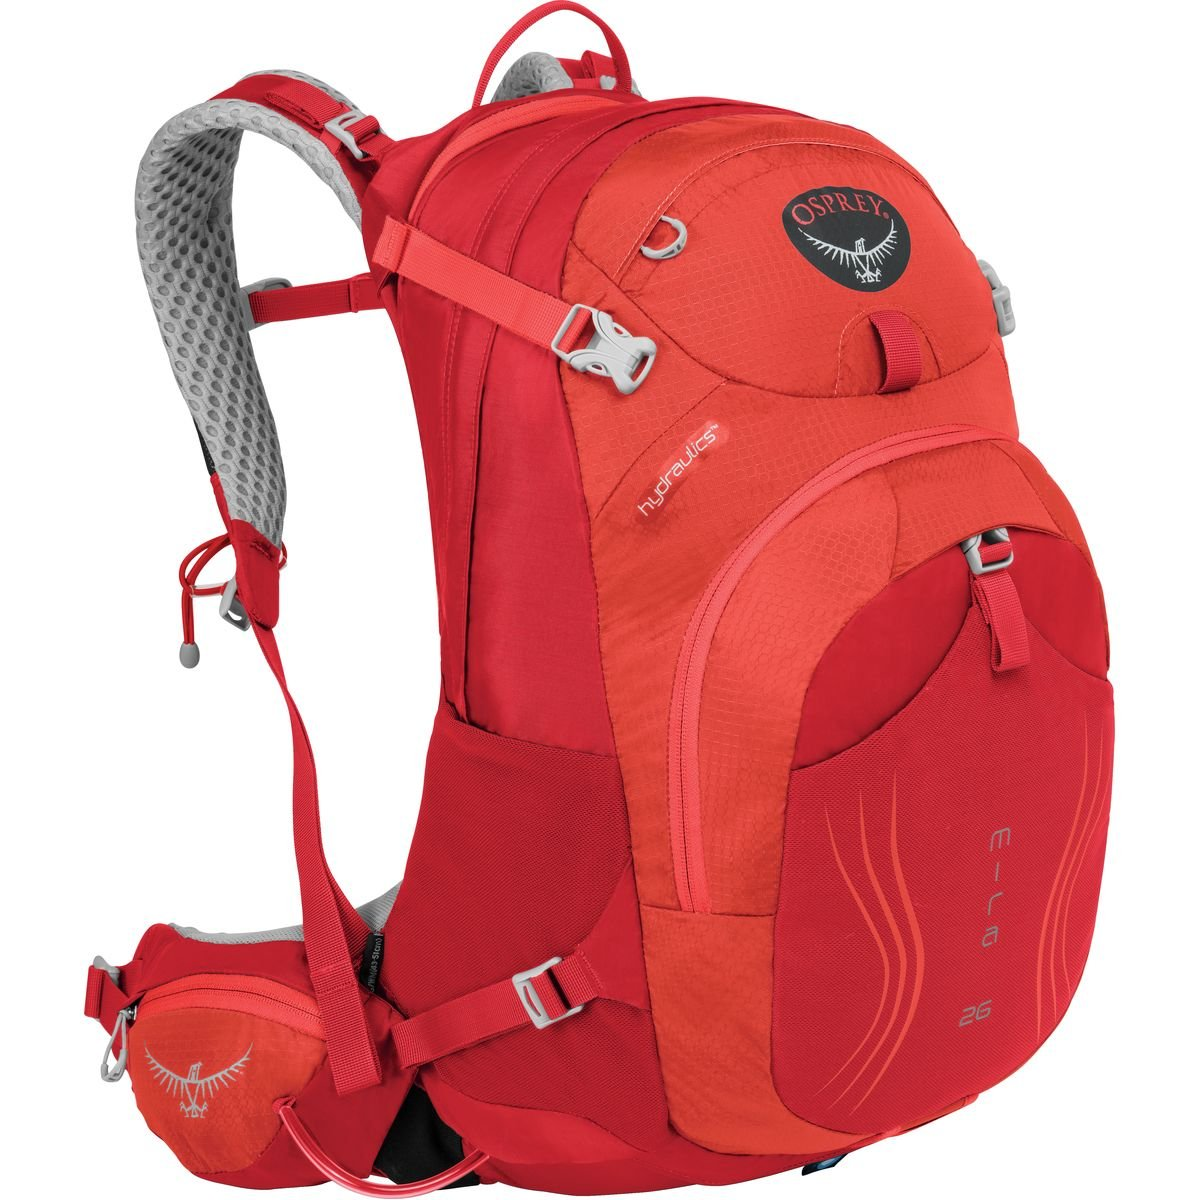 Osprey Mira AG 26 Hydration Pack S/M チェリーレッド B01E7CY2S2